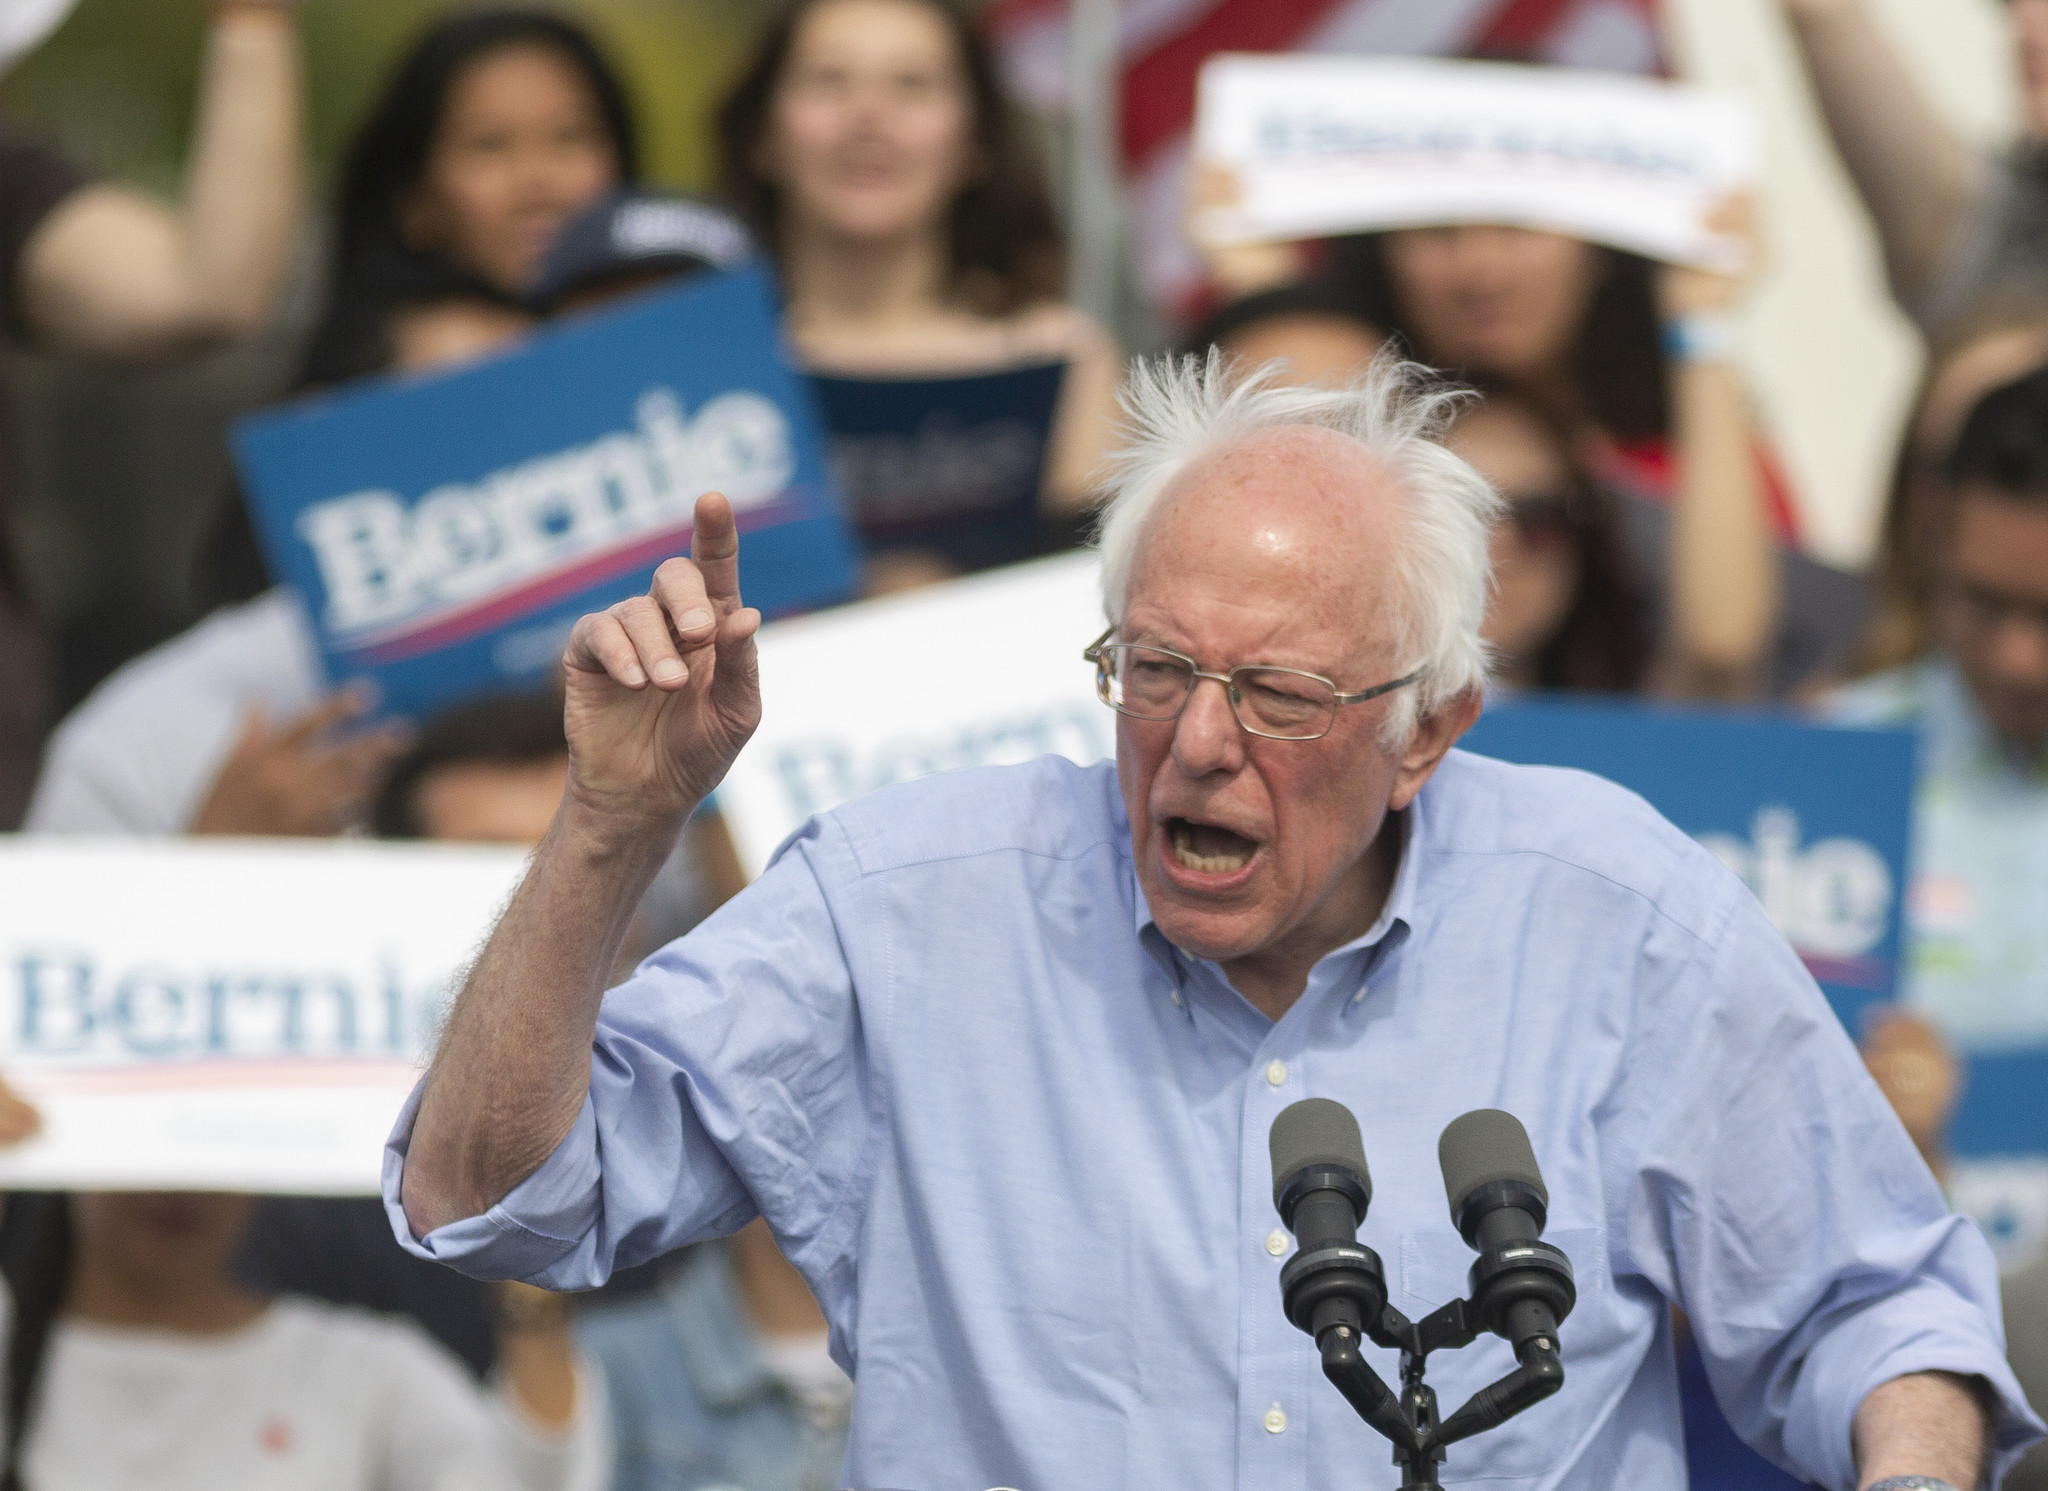 Bernie Sanders warns Russia to 'stay out' after intel report reveals help for him and Trump